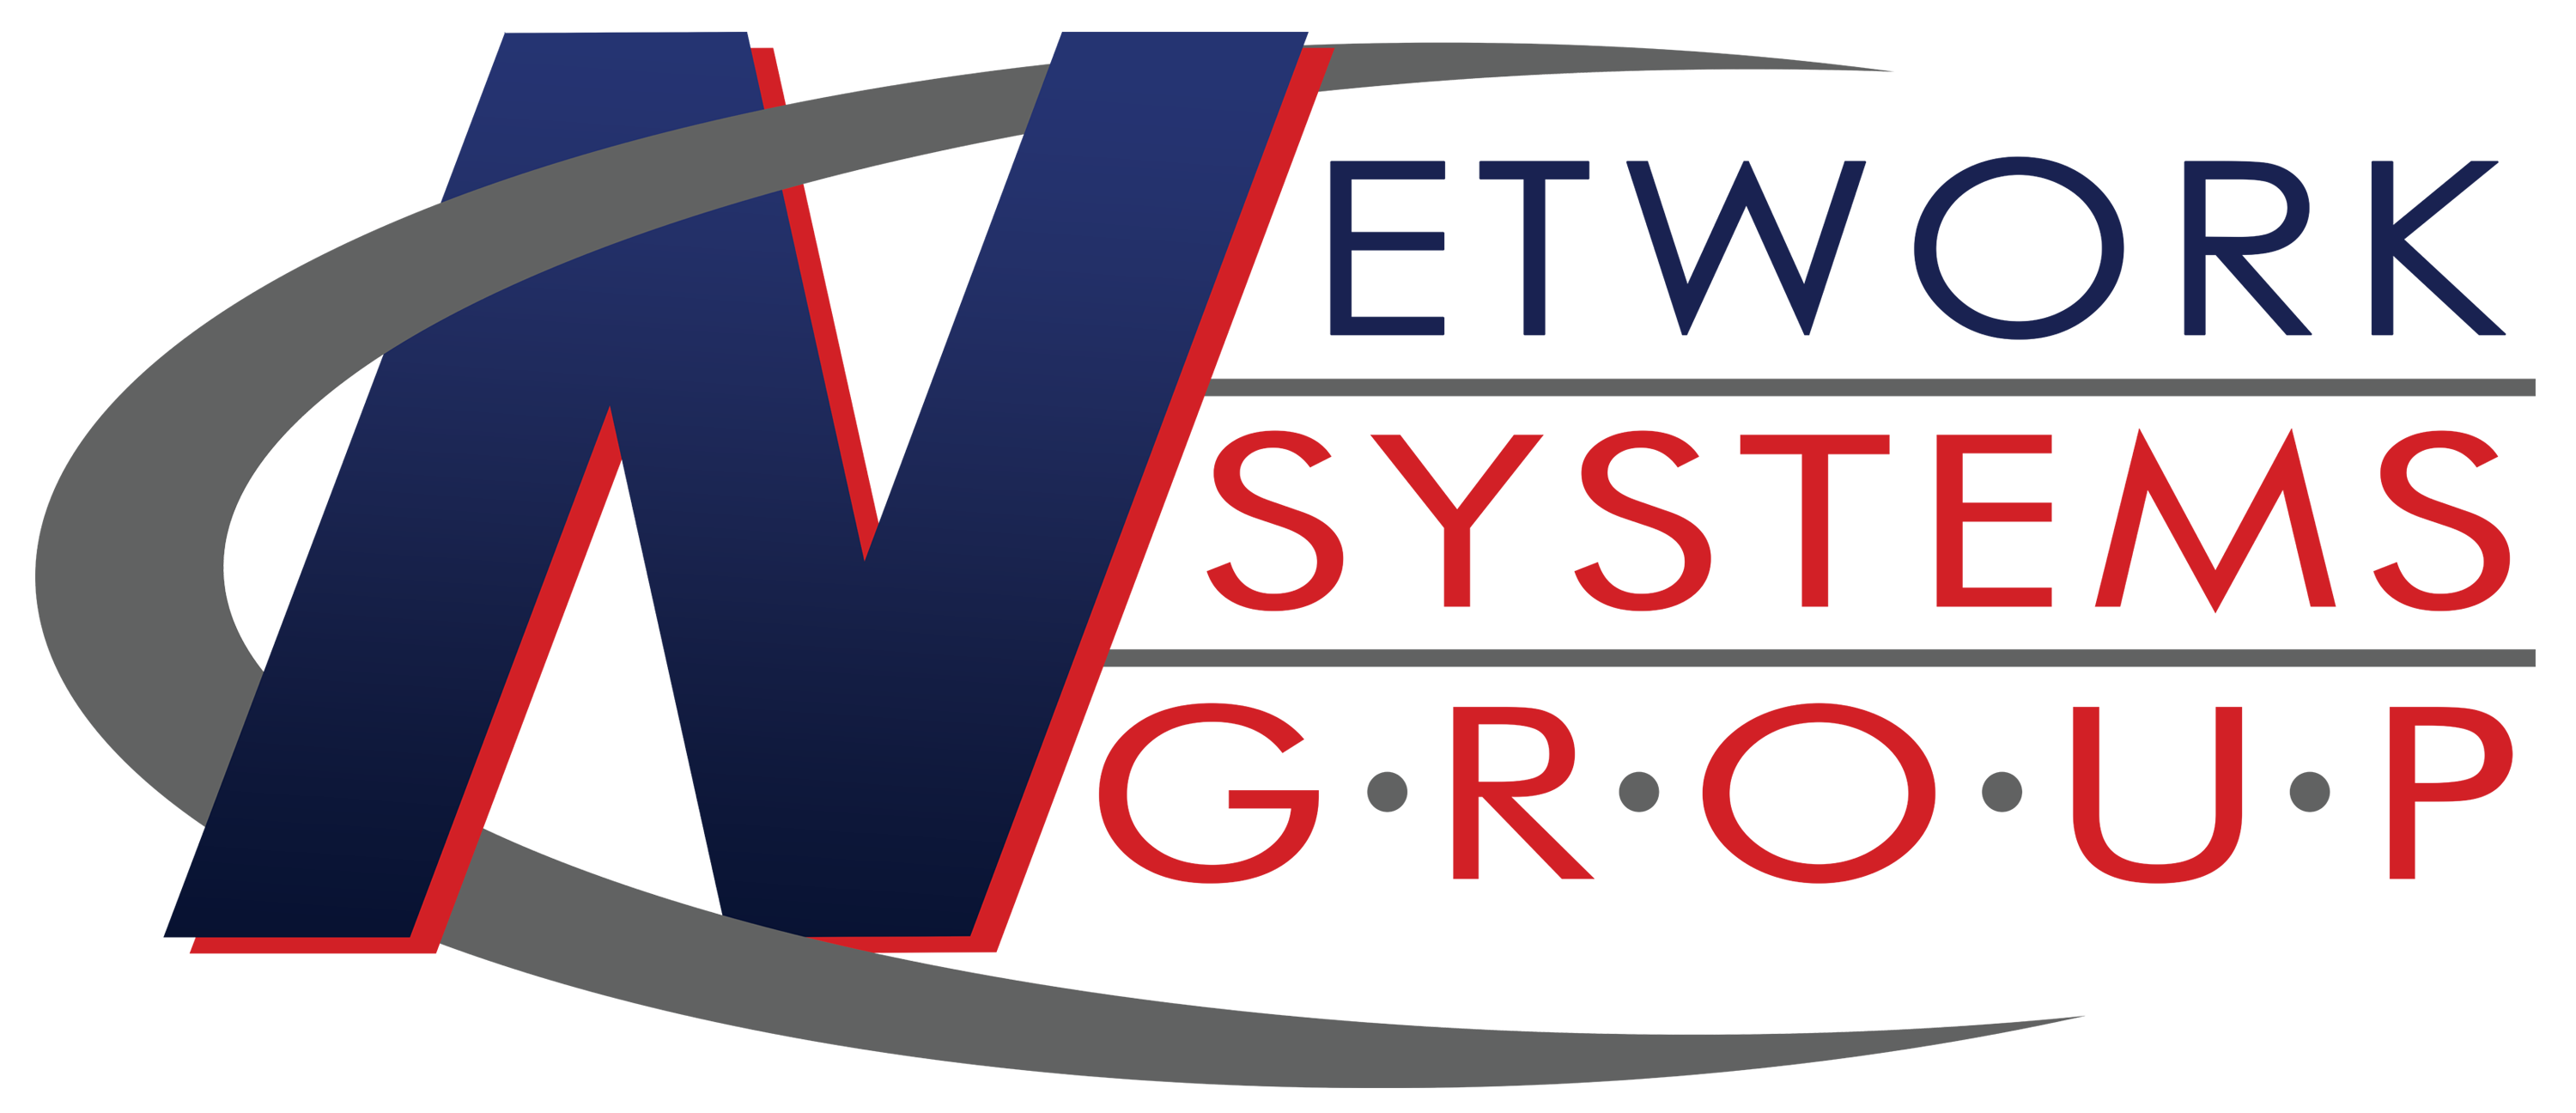 Network Systems Group.png